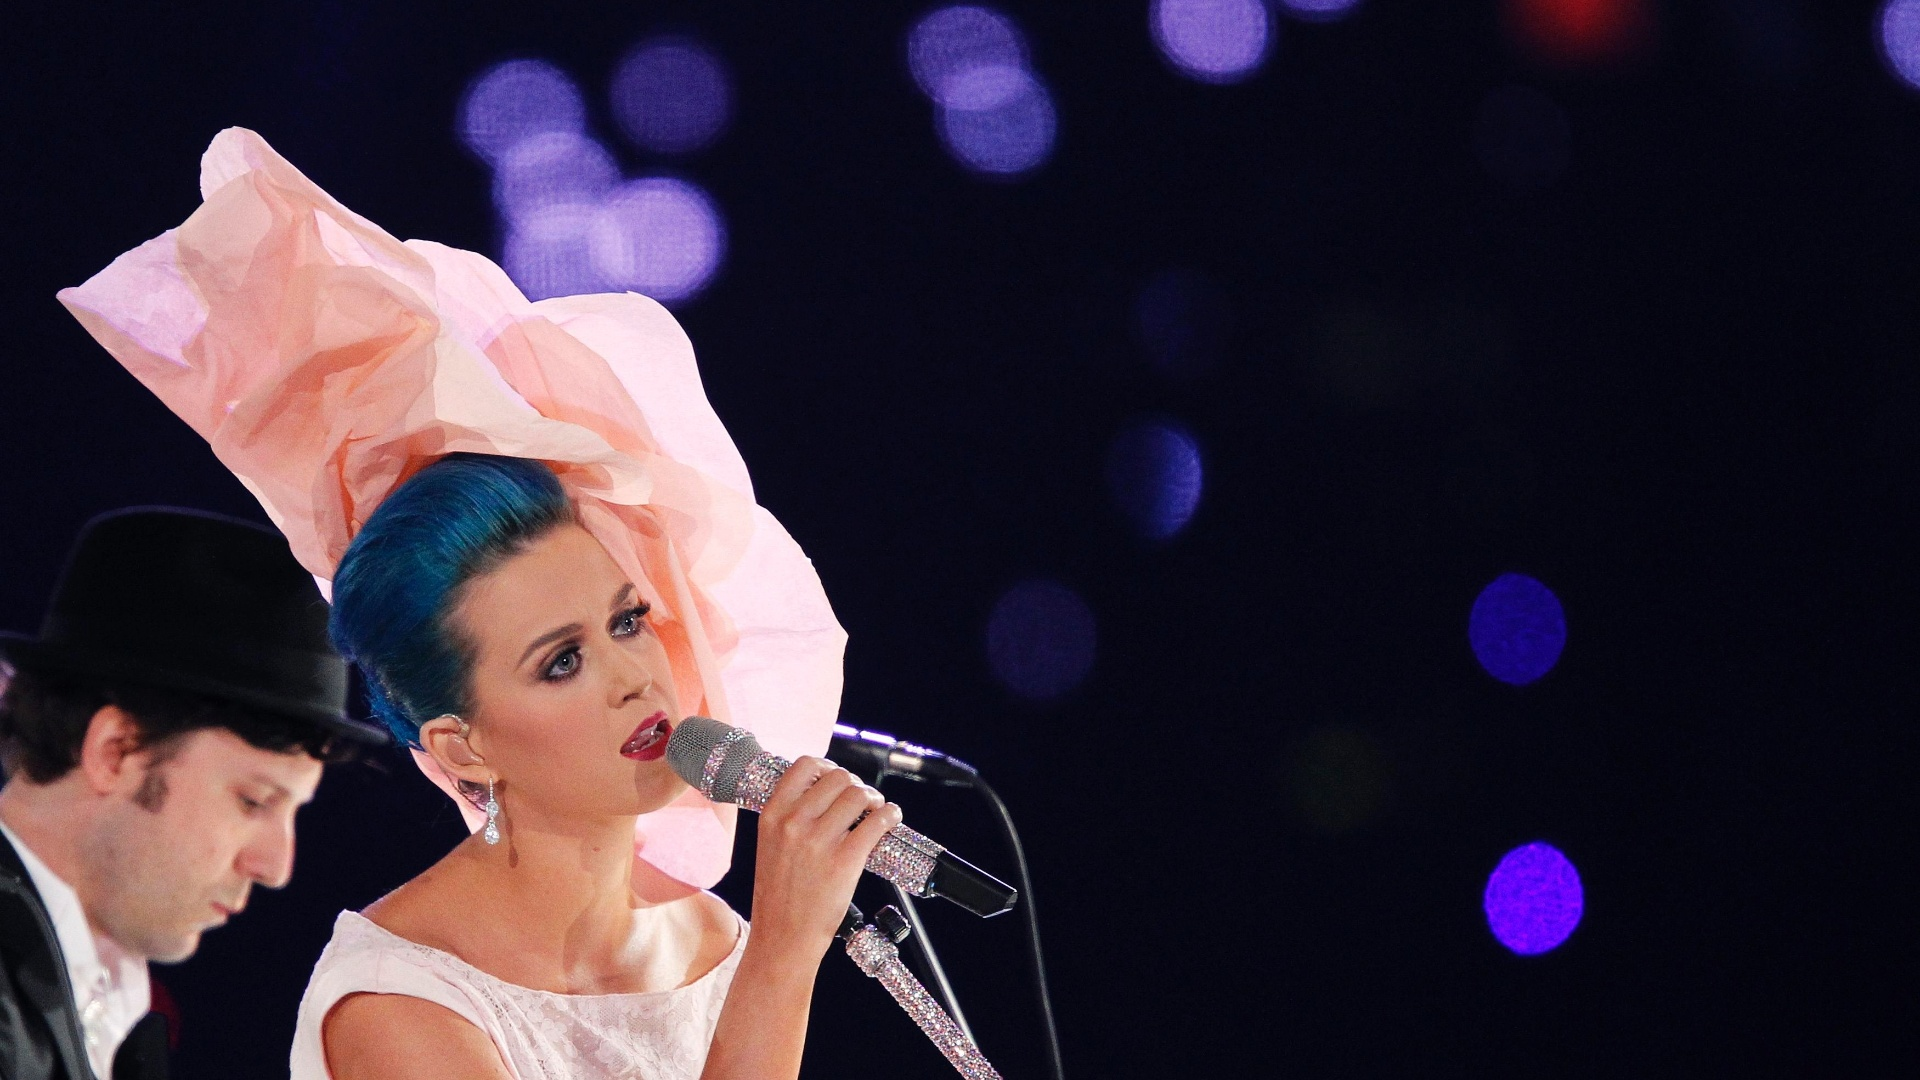 Katy Perry homenageia Paul McCartney nos EUA (10/2/12)